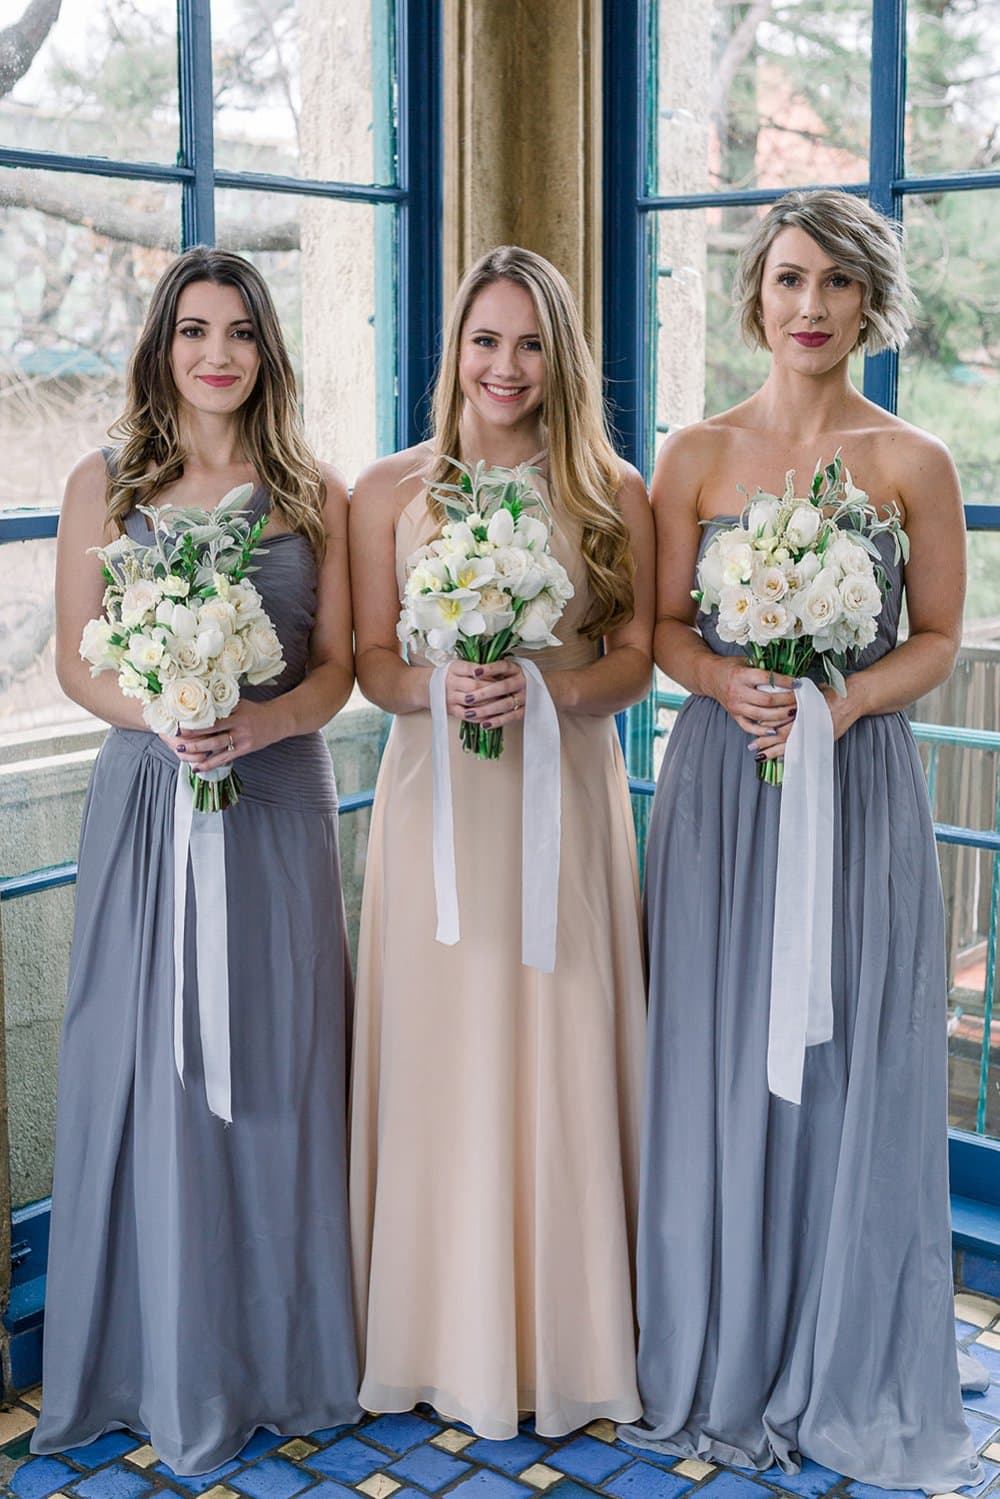 The Bridal Squad Styled Shoot